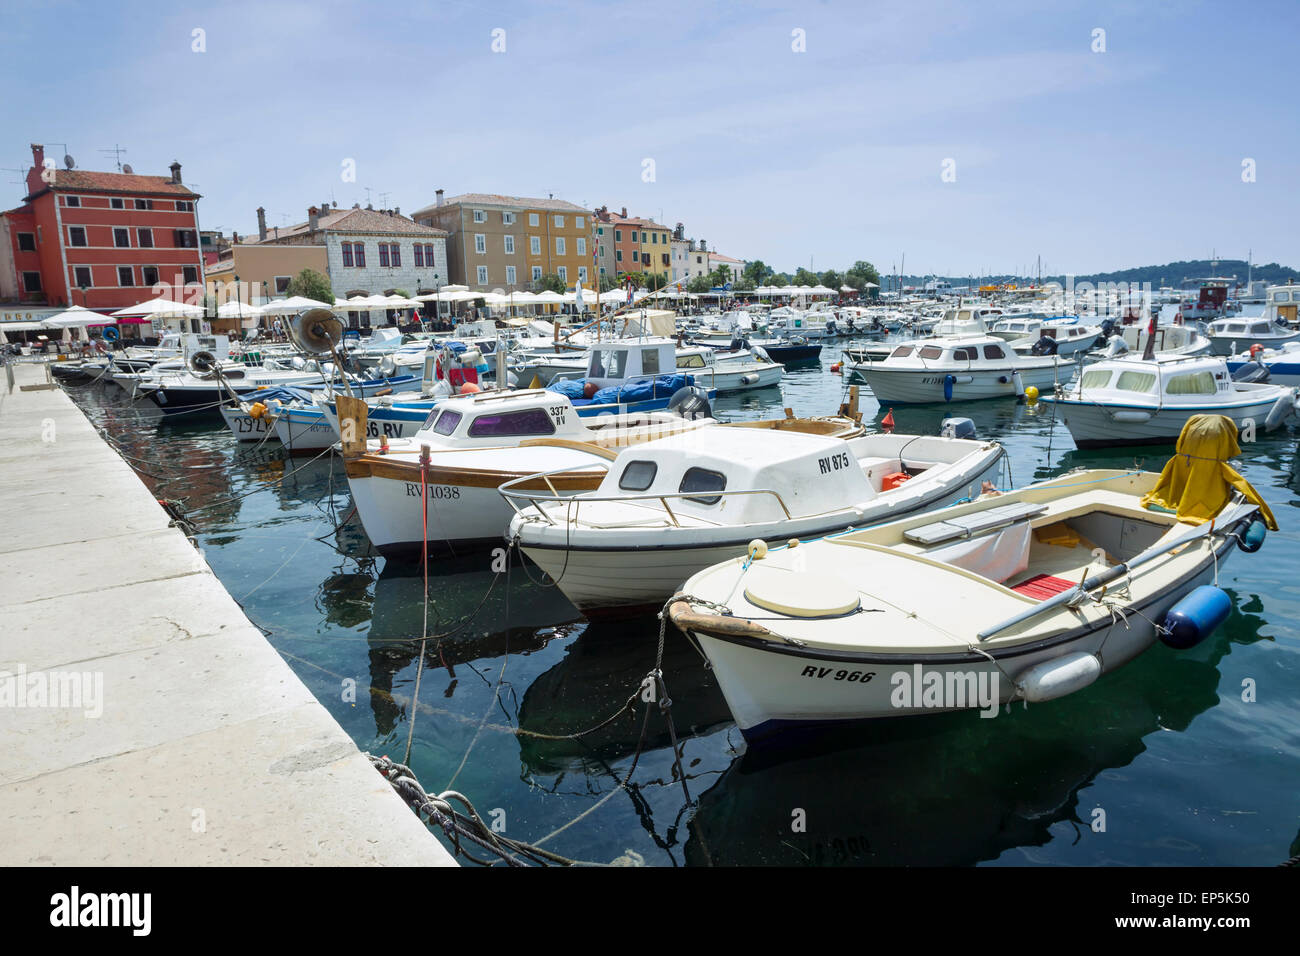 A large group of boats anchored in the marina with a view of the city promenade in Rovinj, Croatia. - Stock Image